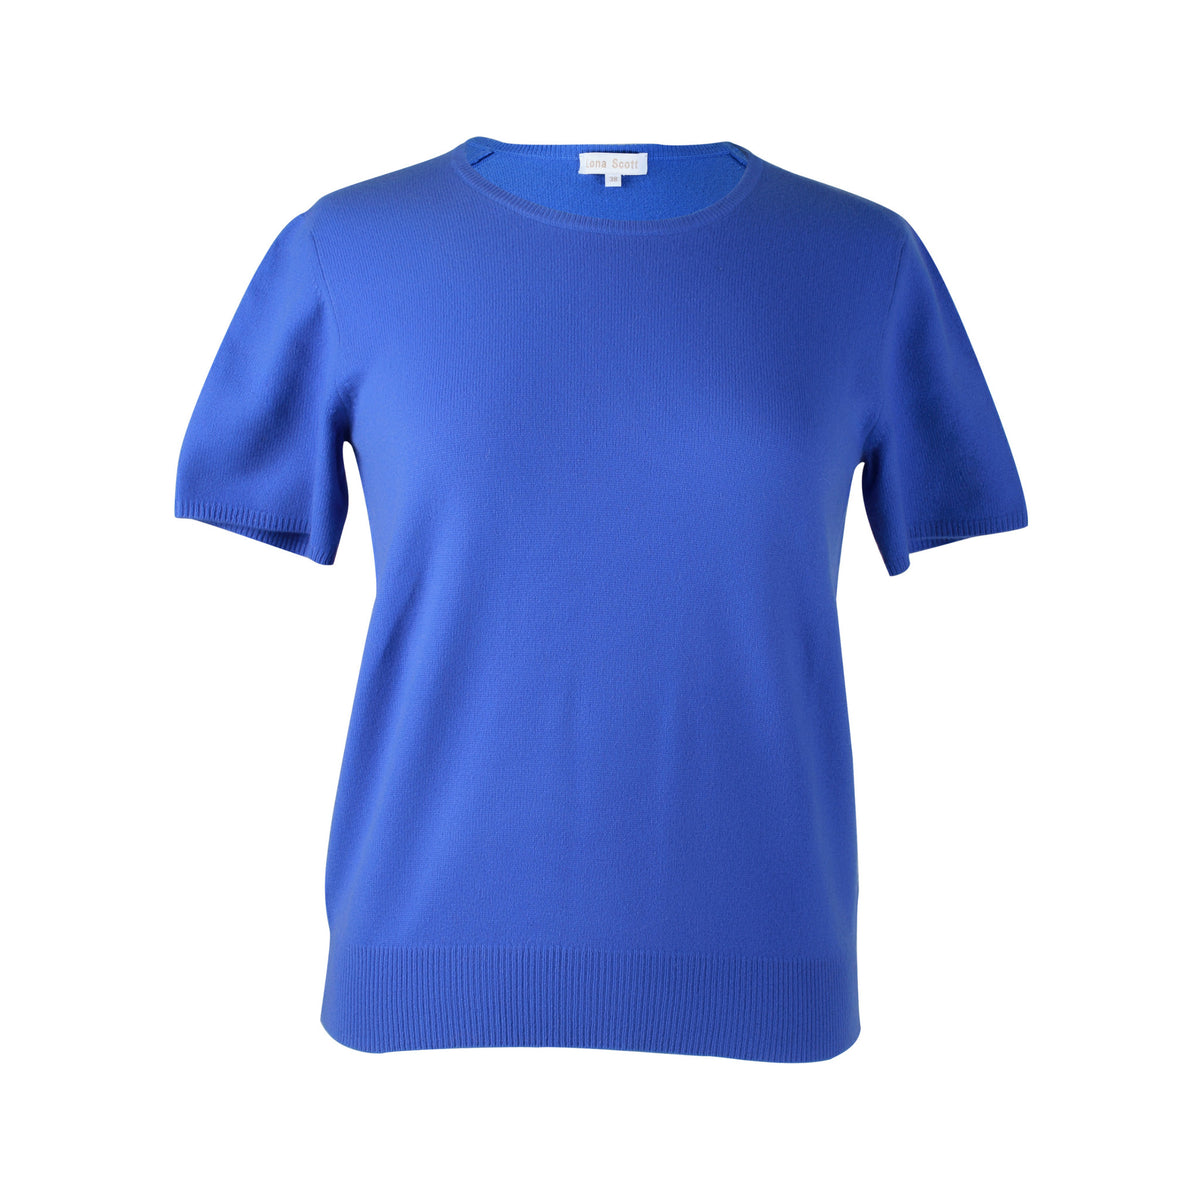 Ladies Blue Cashmere Sweater | Short Sleeve | The Cashmere Choice London